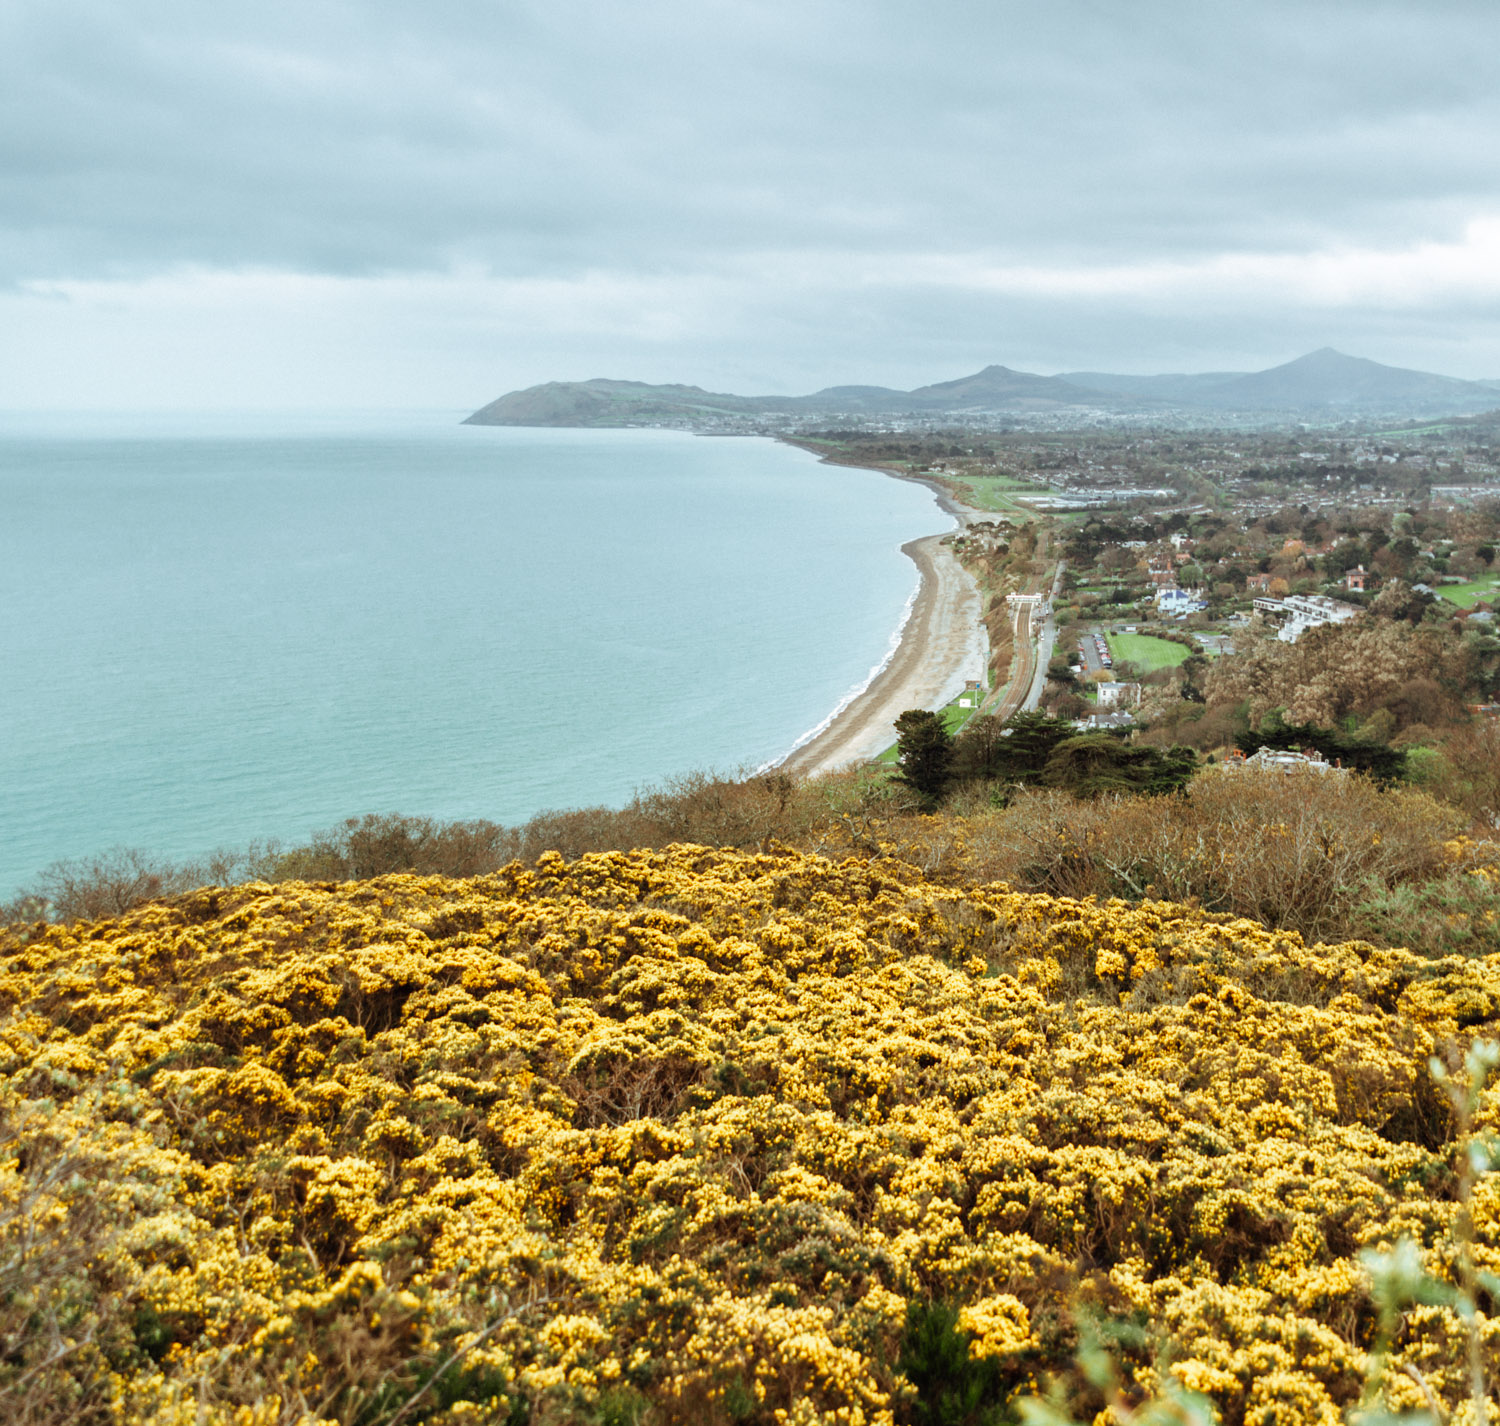 Killiney Hill, Ireland - Dublin's Beautiful Coastline